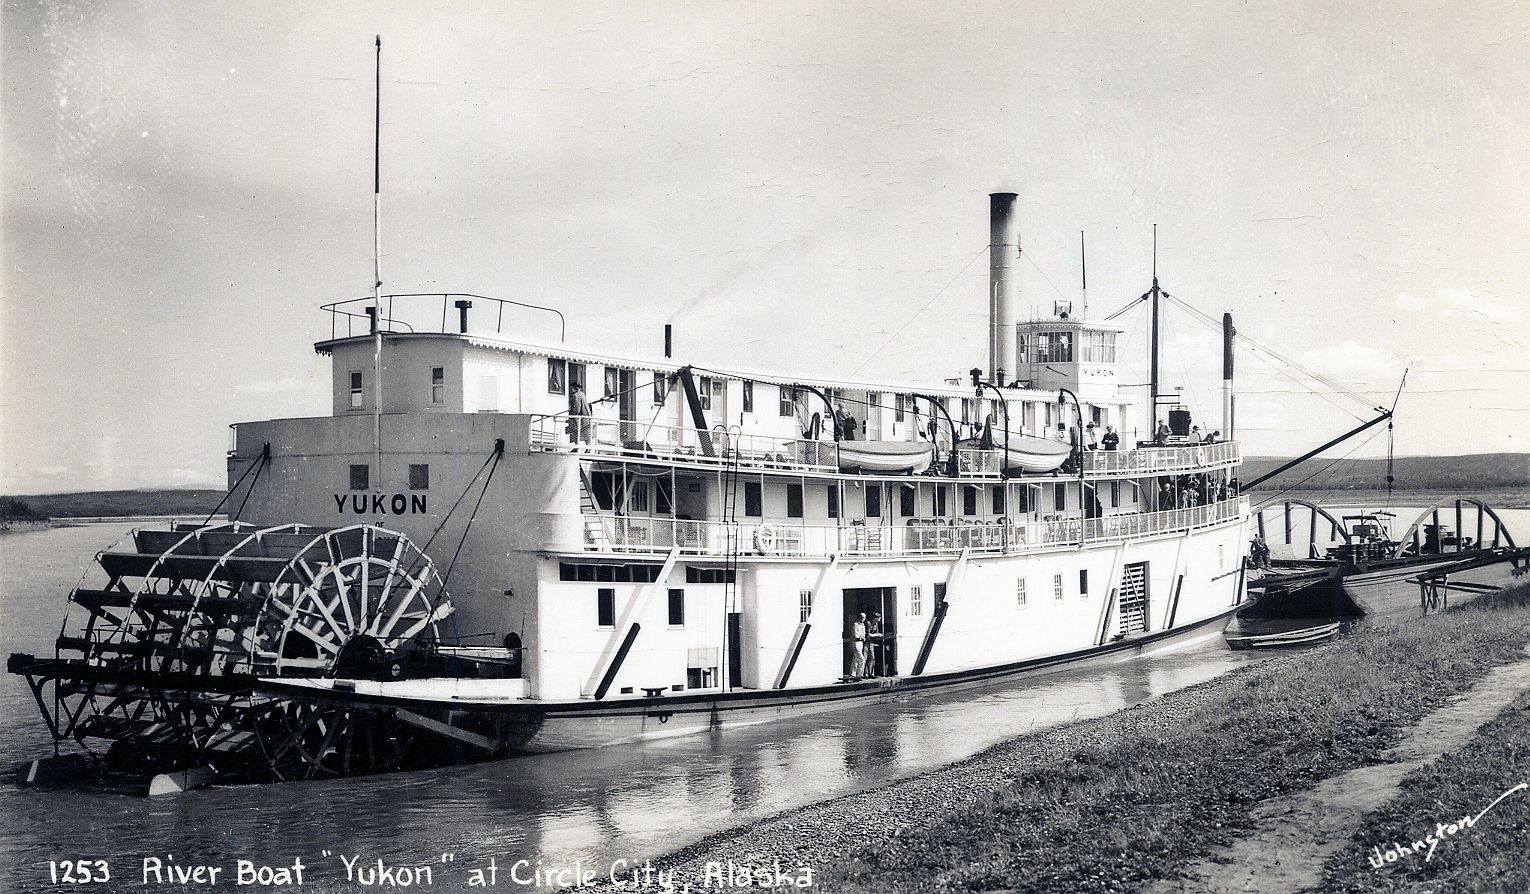 Yukon riverboat